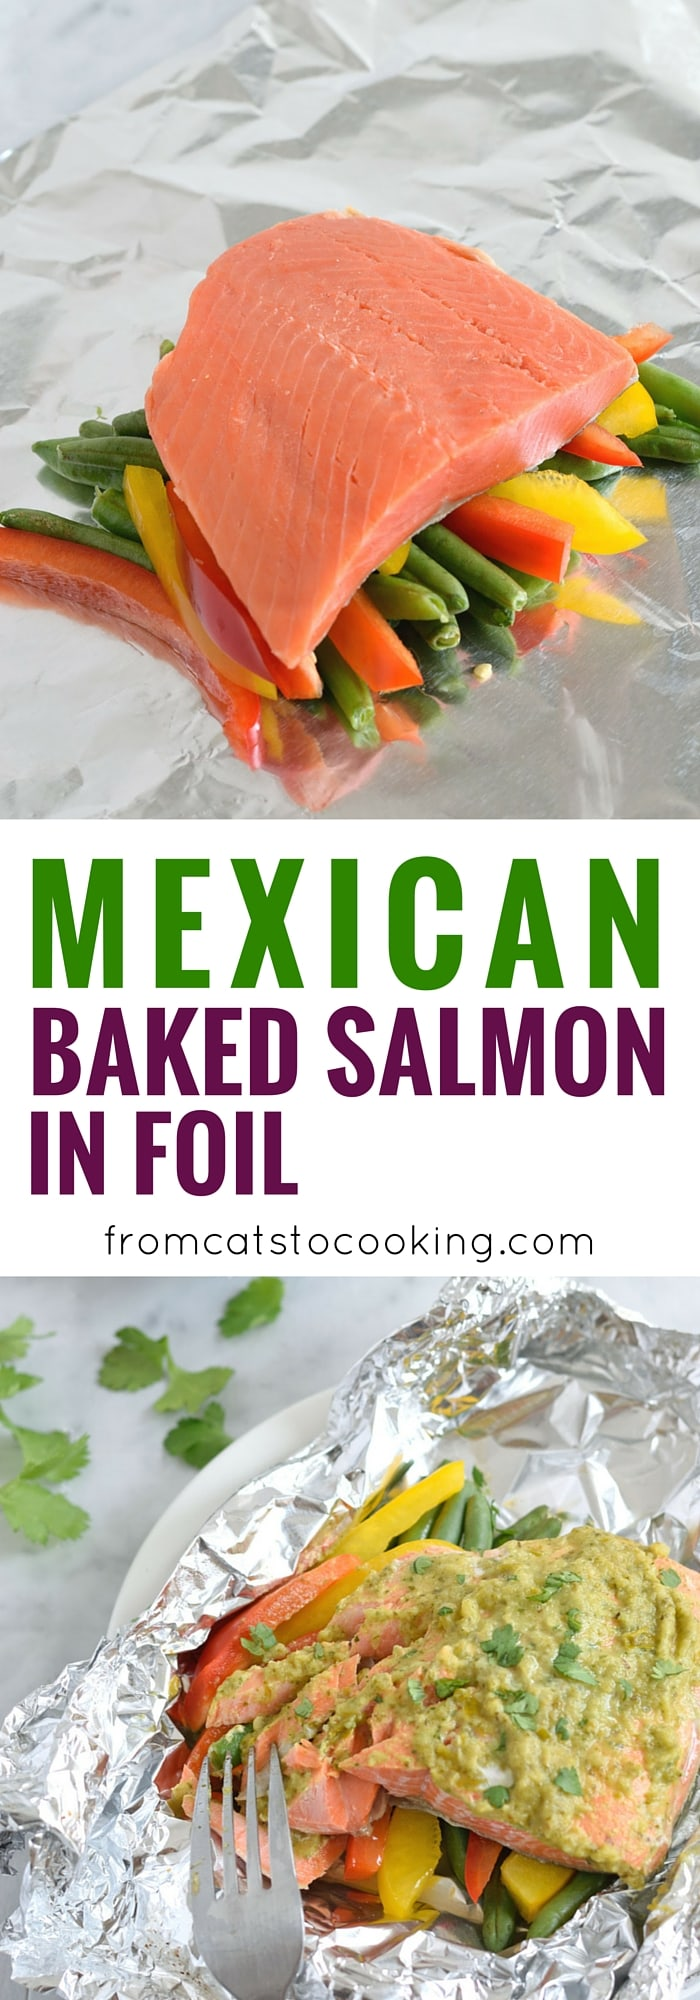 Topped with a green chile cilantro sauce, this Mexican Baked Salmon in Foil recipe is easy to make, takes 35 minutes from start to finish and is perfect for lunch and dinner. It's also super healthy and is gluten free, paleo, vegetarian and clean eating.